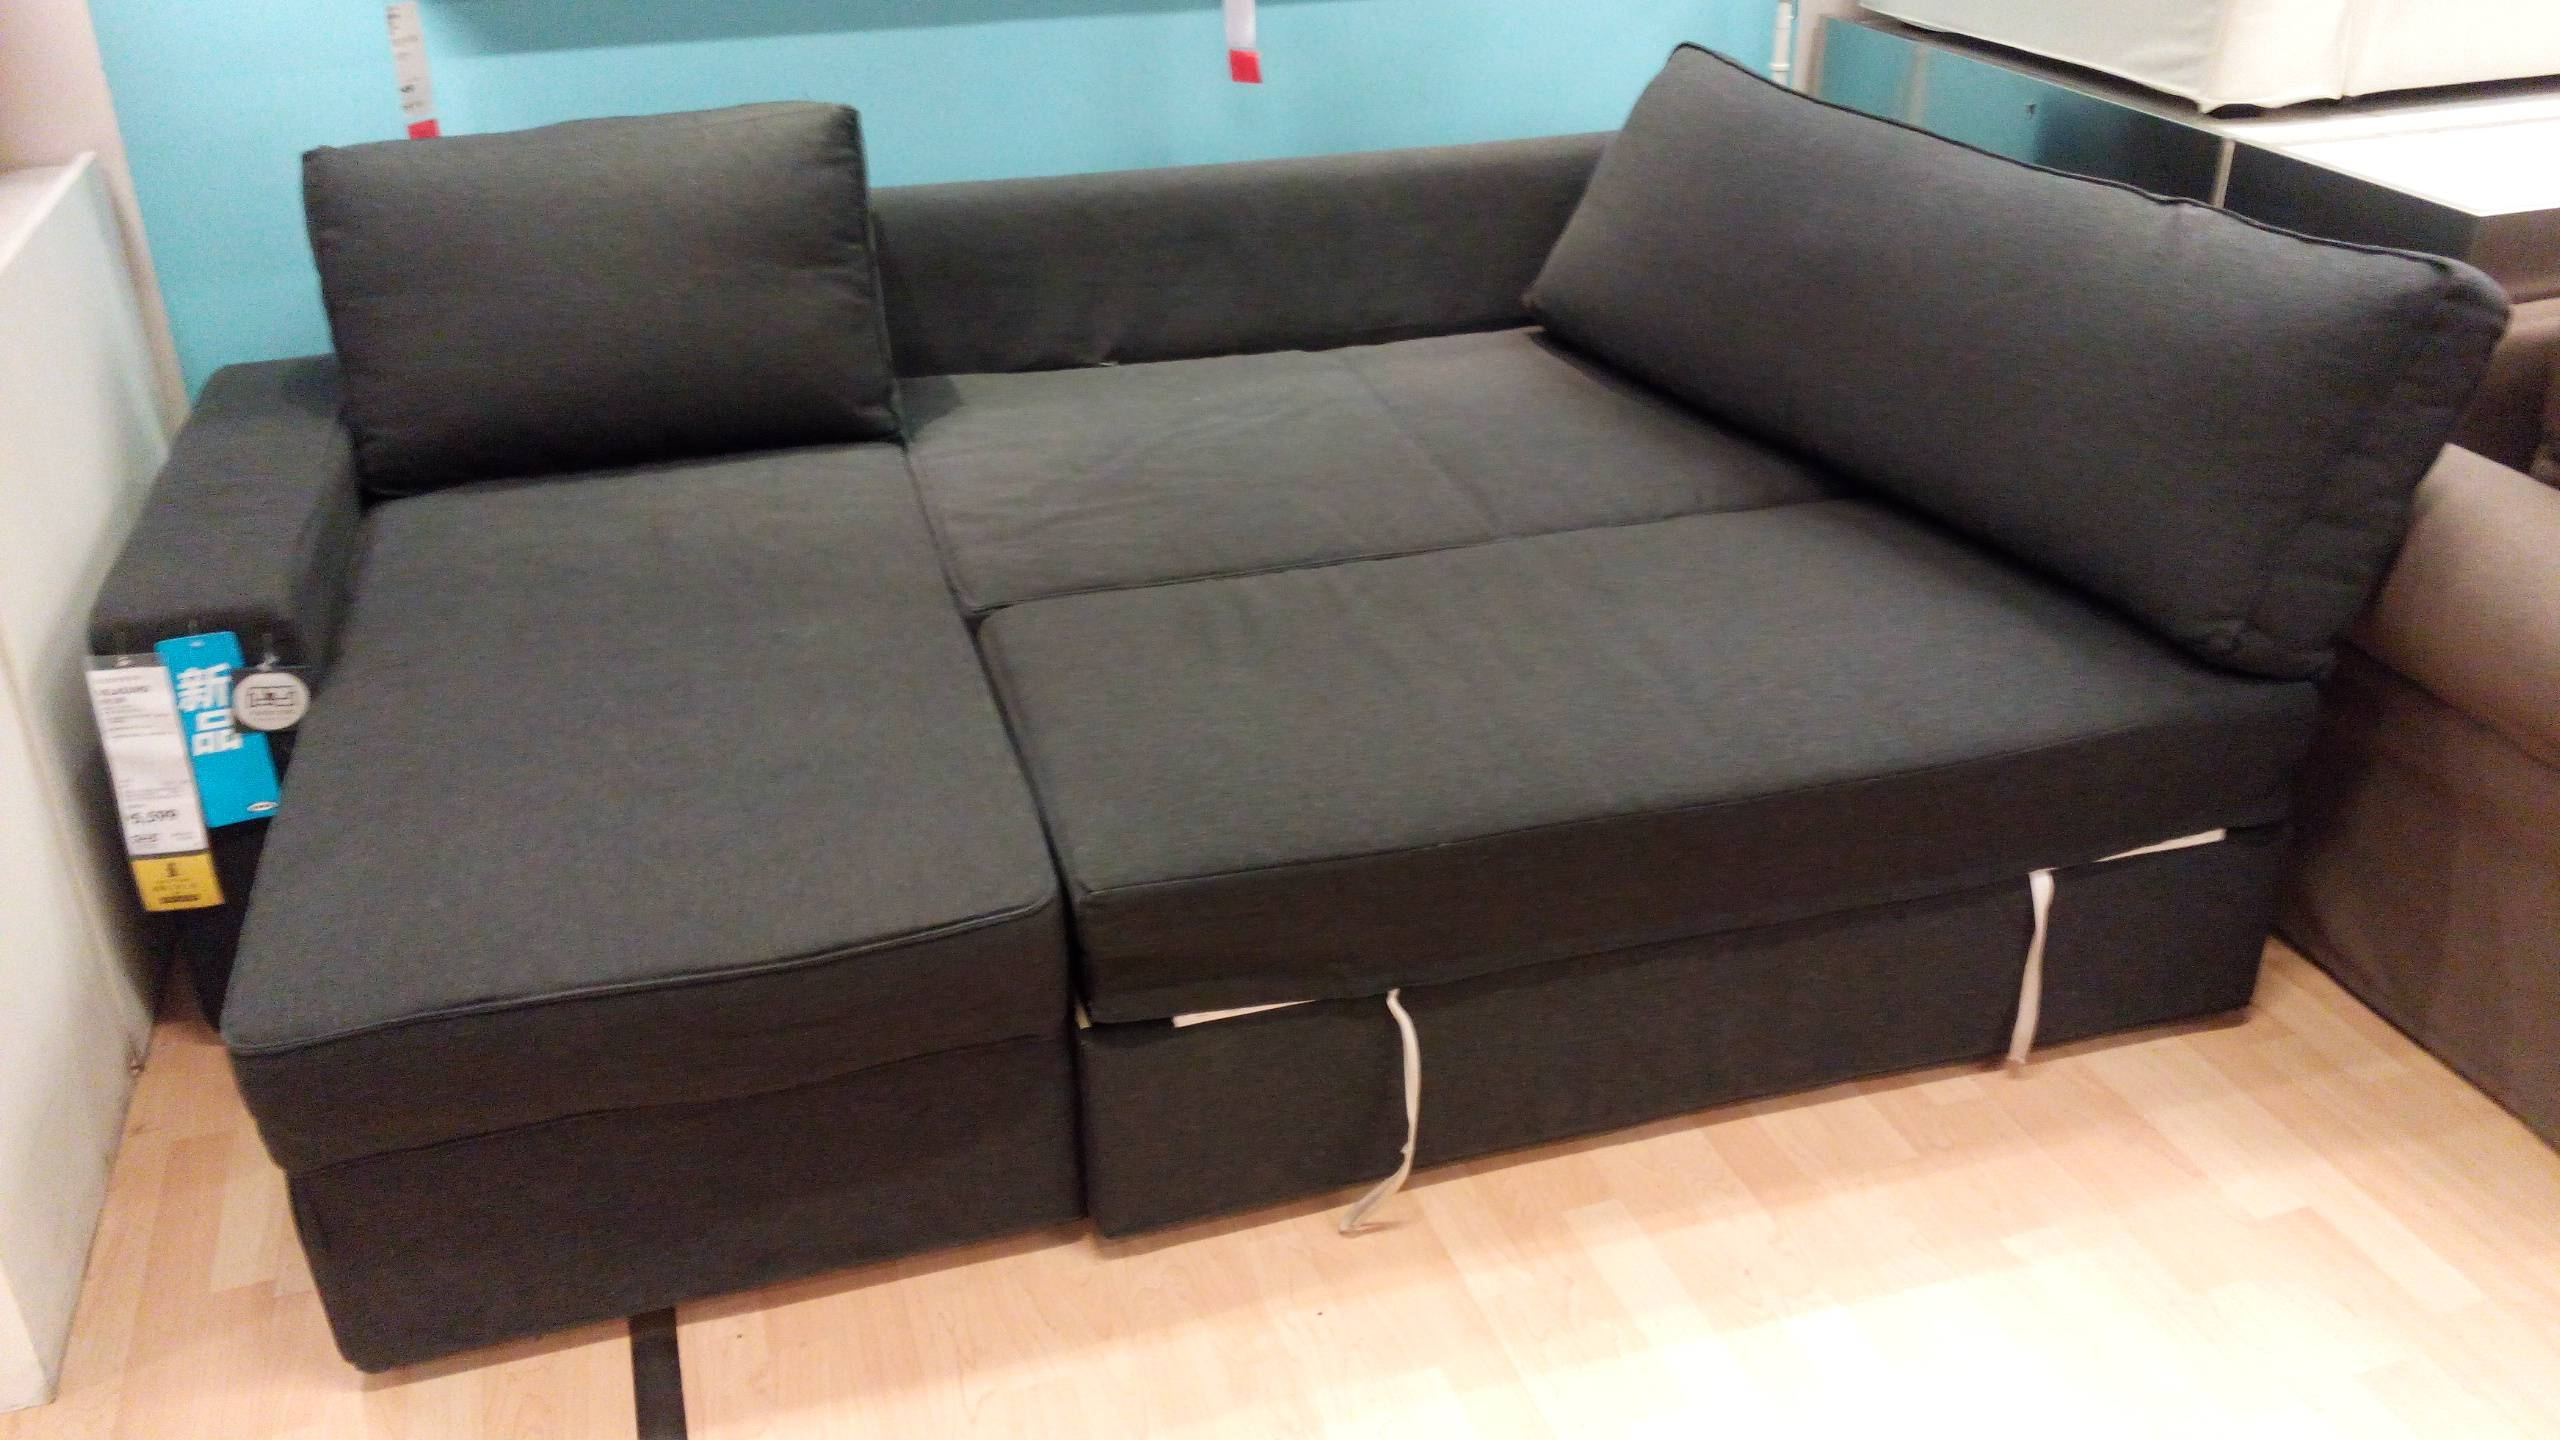 Ikea Vilasund And Backabro Review - Return Of The Sofa Bed Clones! in Chaise Longue Sofa Beds (Image 8 of 15)